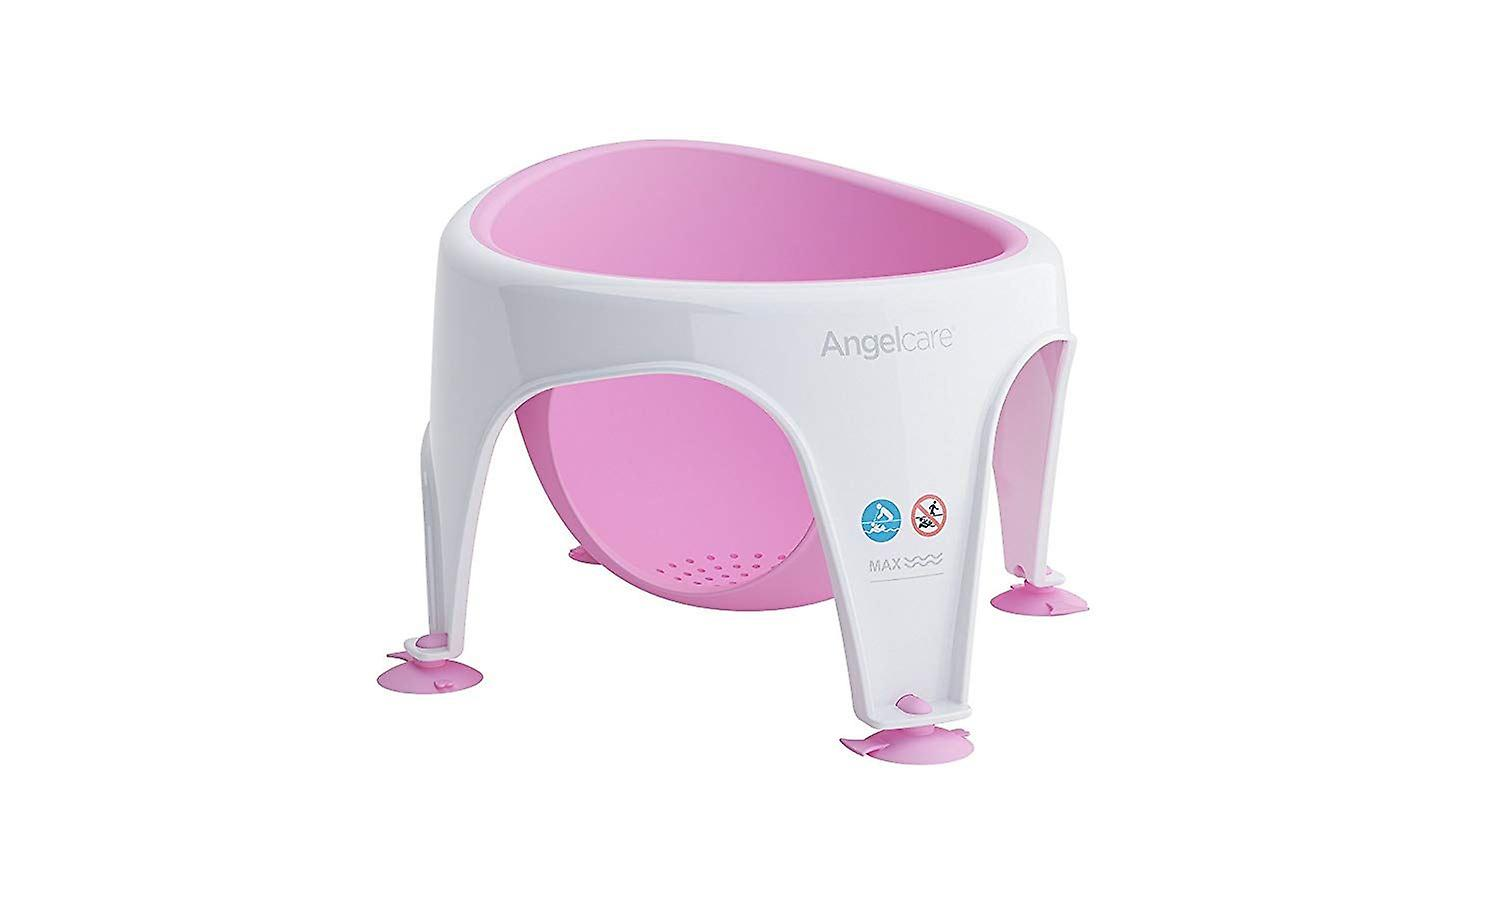 Angelcare Soft Touch Bad kinderstoel - roze